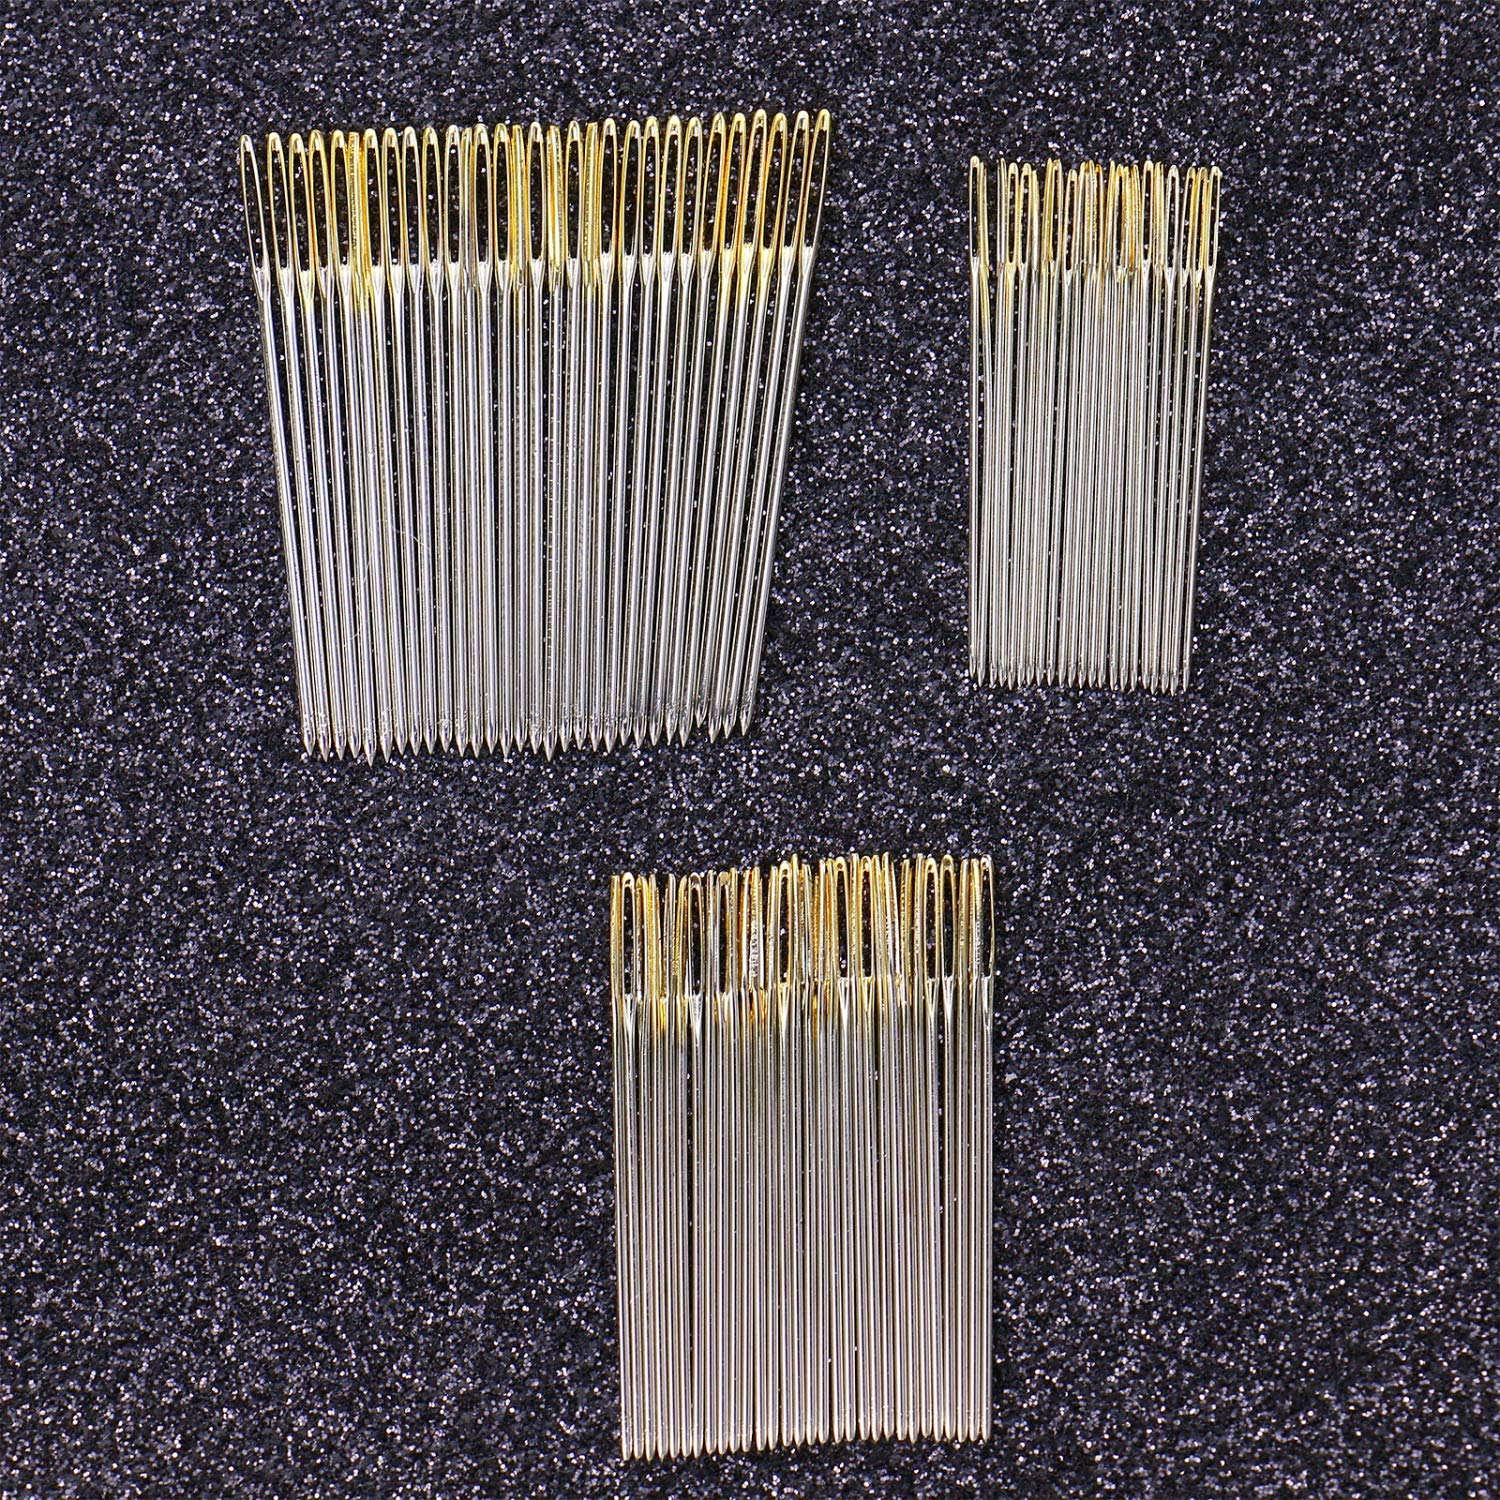 Monrocco 90 pcs Large-Eye Hand Sewing Needles for Sewing Repair 3 Sizes with 2 Threaders